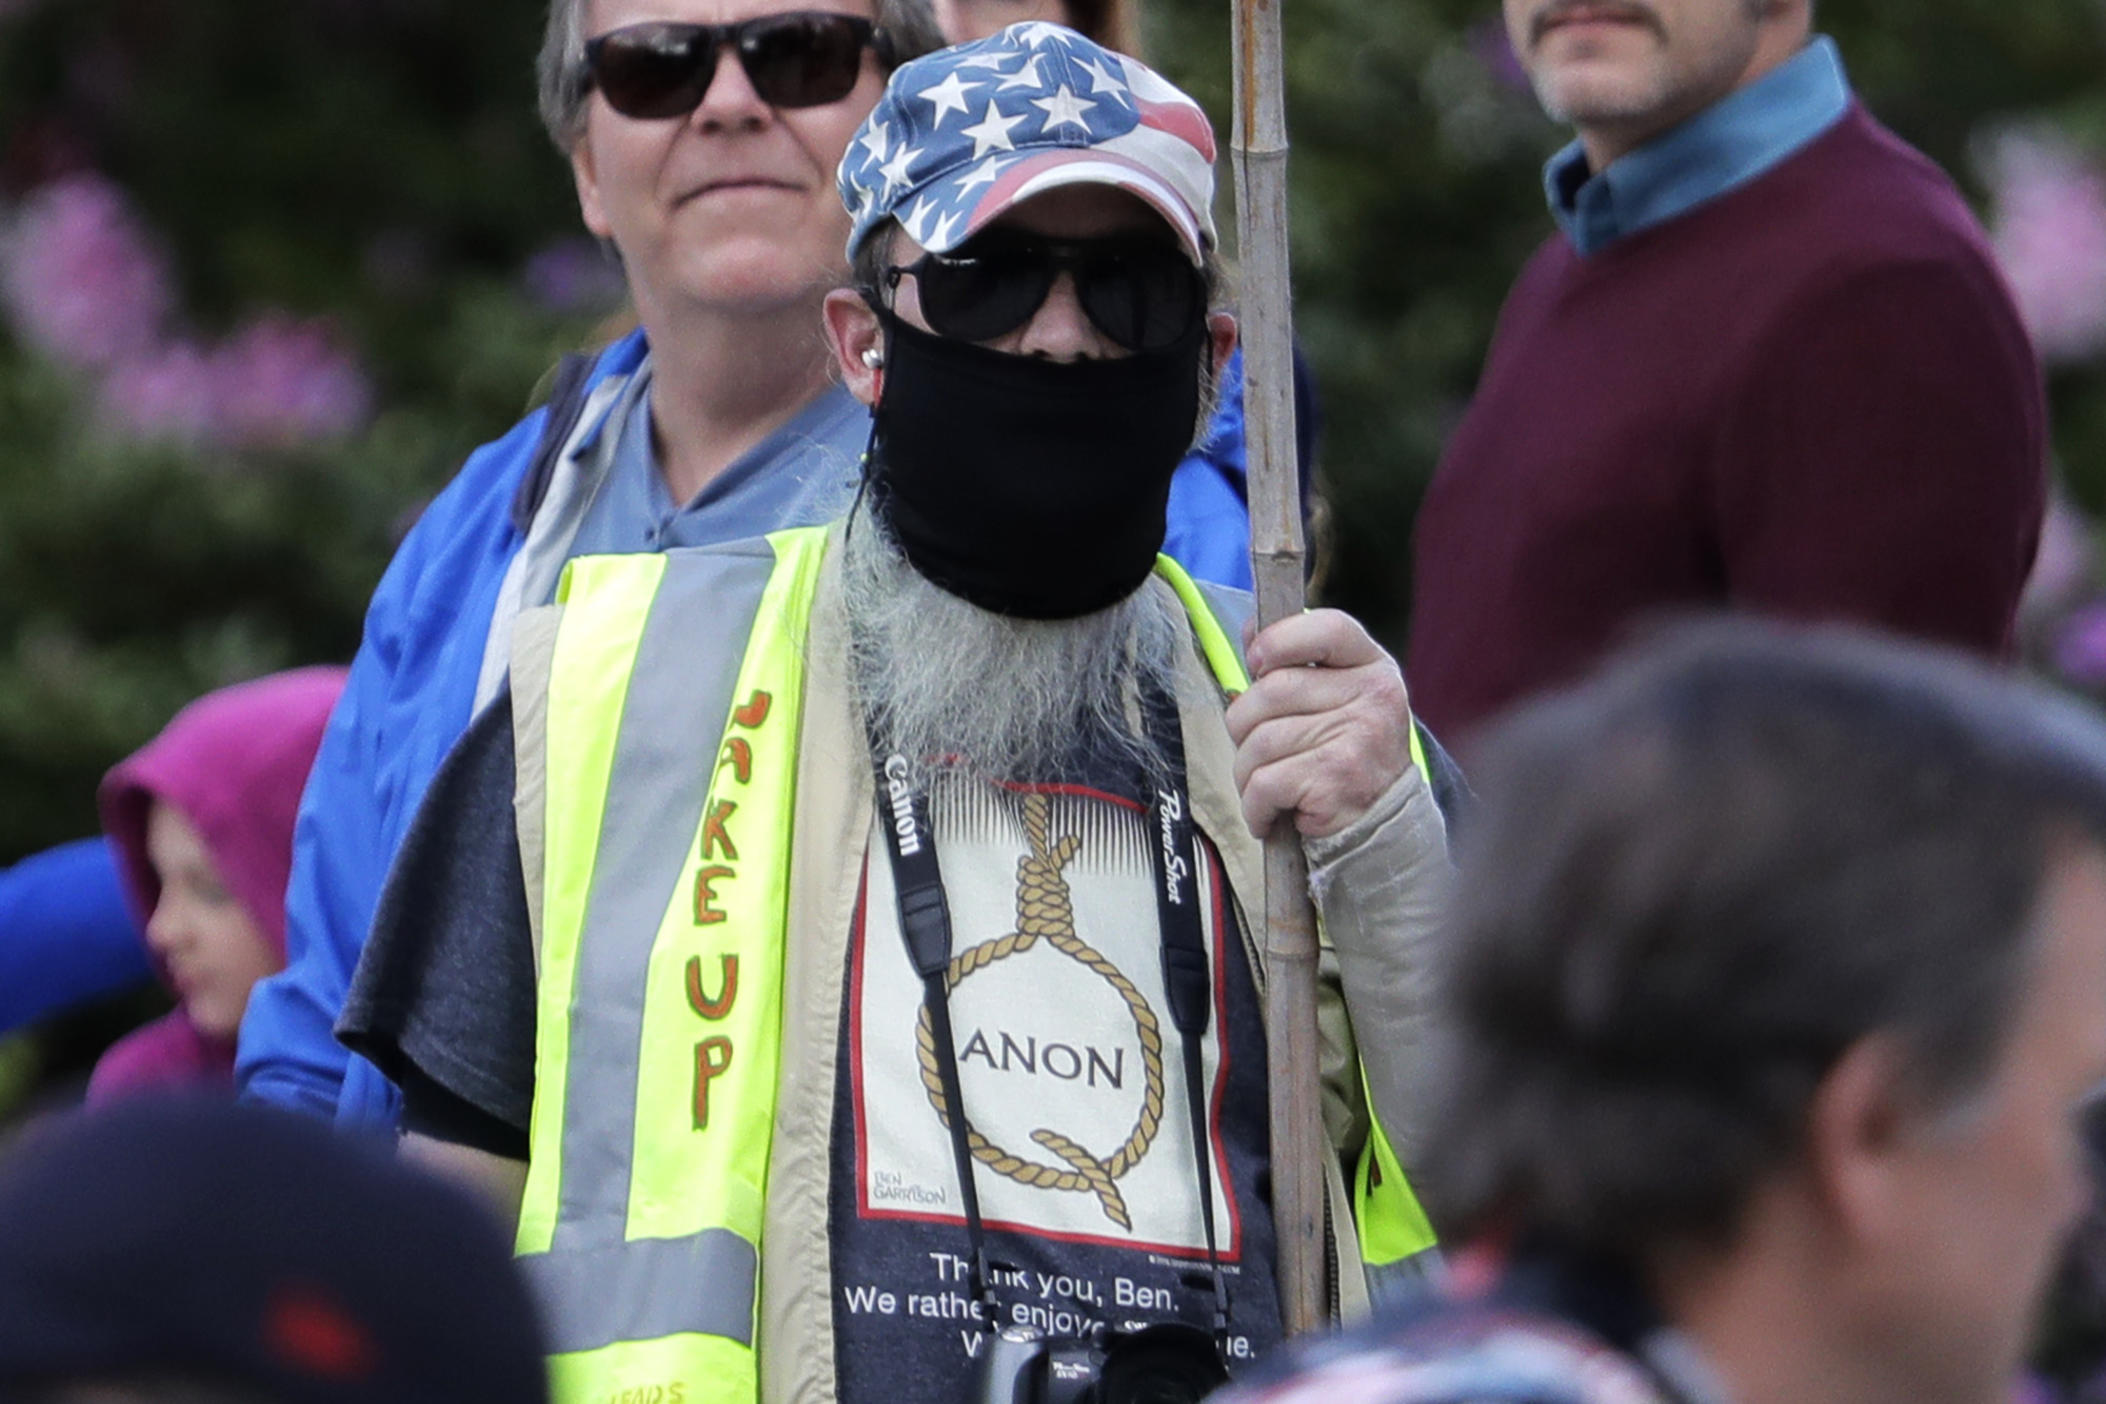 In this May 14, 2020, photo, a person carrying a sign supporting QAnon wears a t-shirt that shows the QAnon name in the format of a rope noose during a protest rally in Olympia, Wash., held against Gov. Jay Inslee and Washington state stay-at-home orders made in efforts to prevent the spread of the coronavirus.